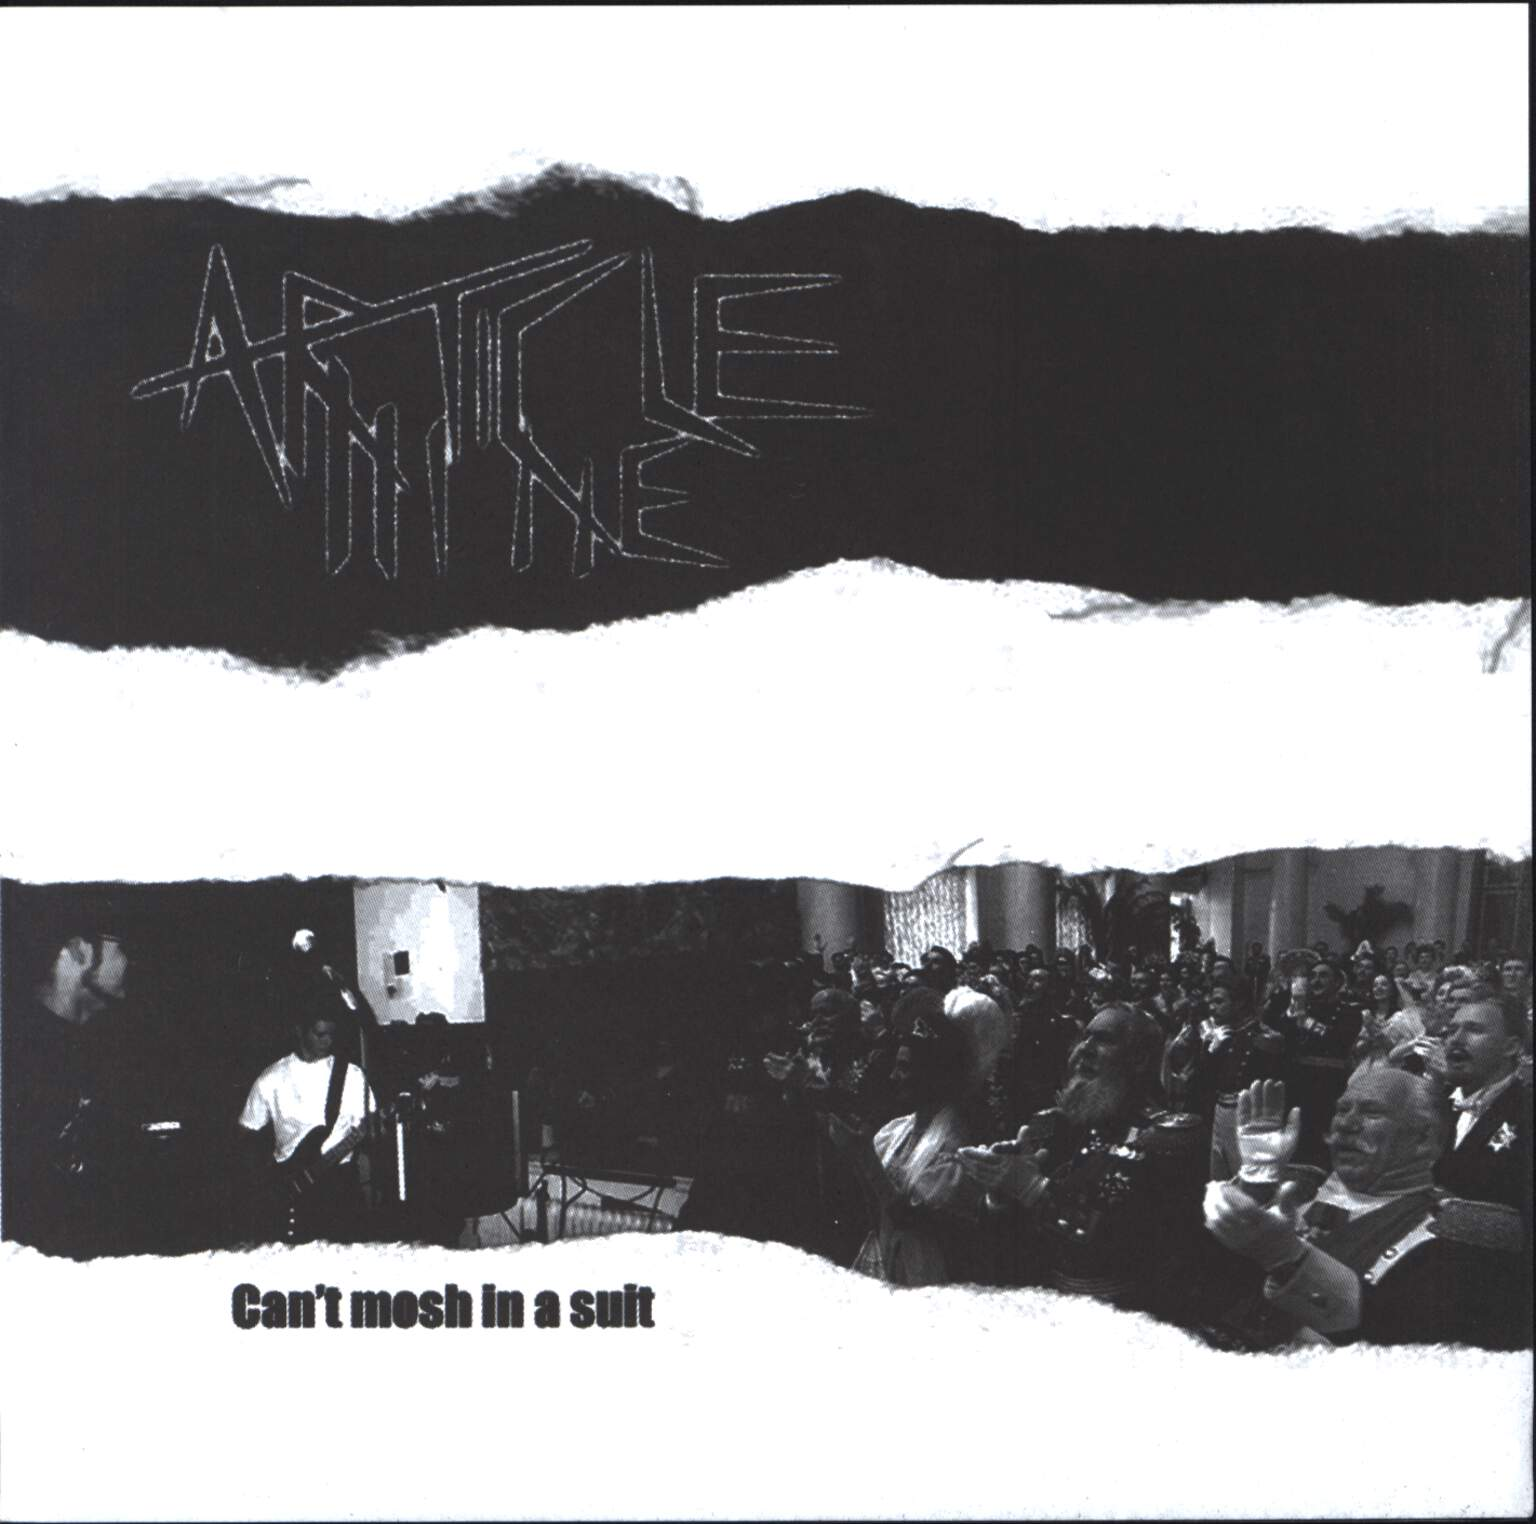 "Article Nine: Can't Mosh In A Suit / Burning Time, 7"" Single (Vinyl)"